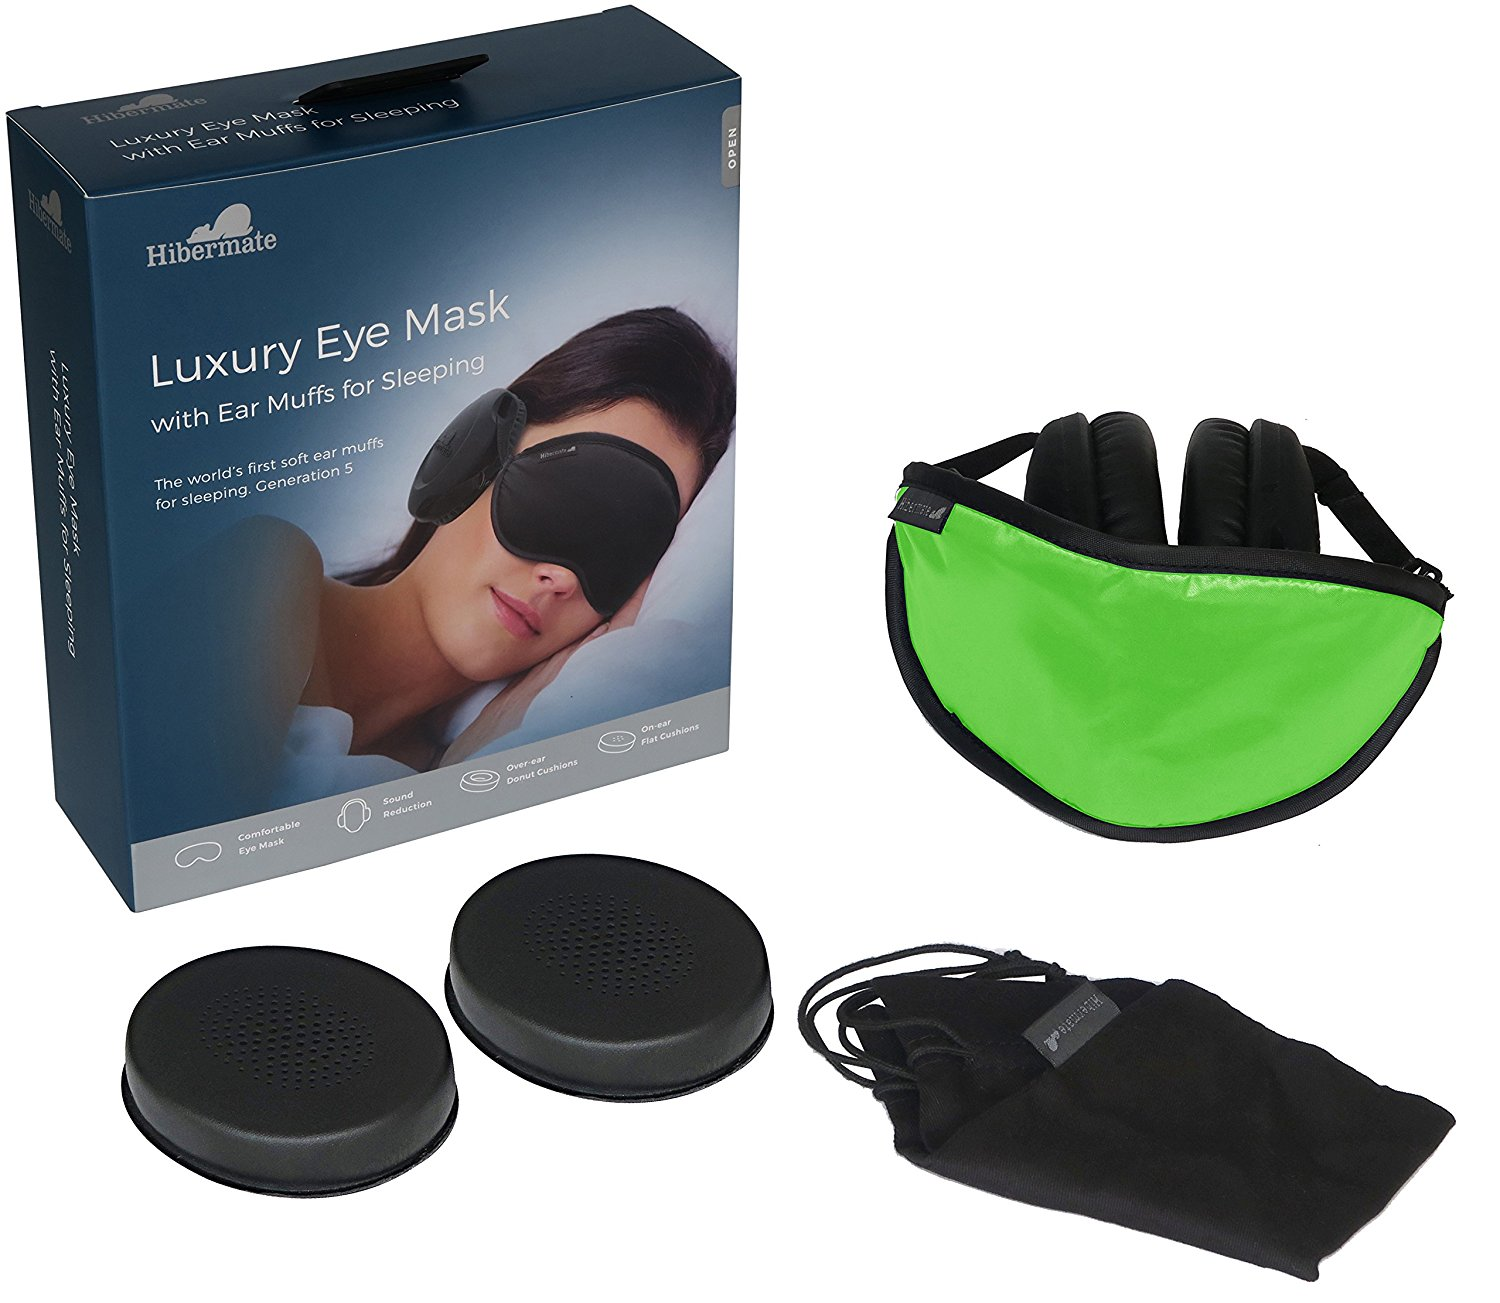 Hibermate Sleep Mask with Ear Muffs